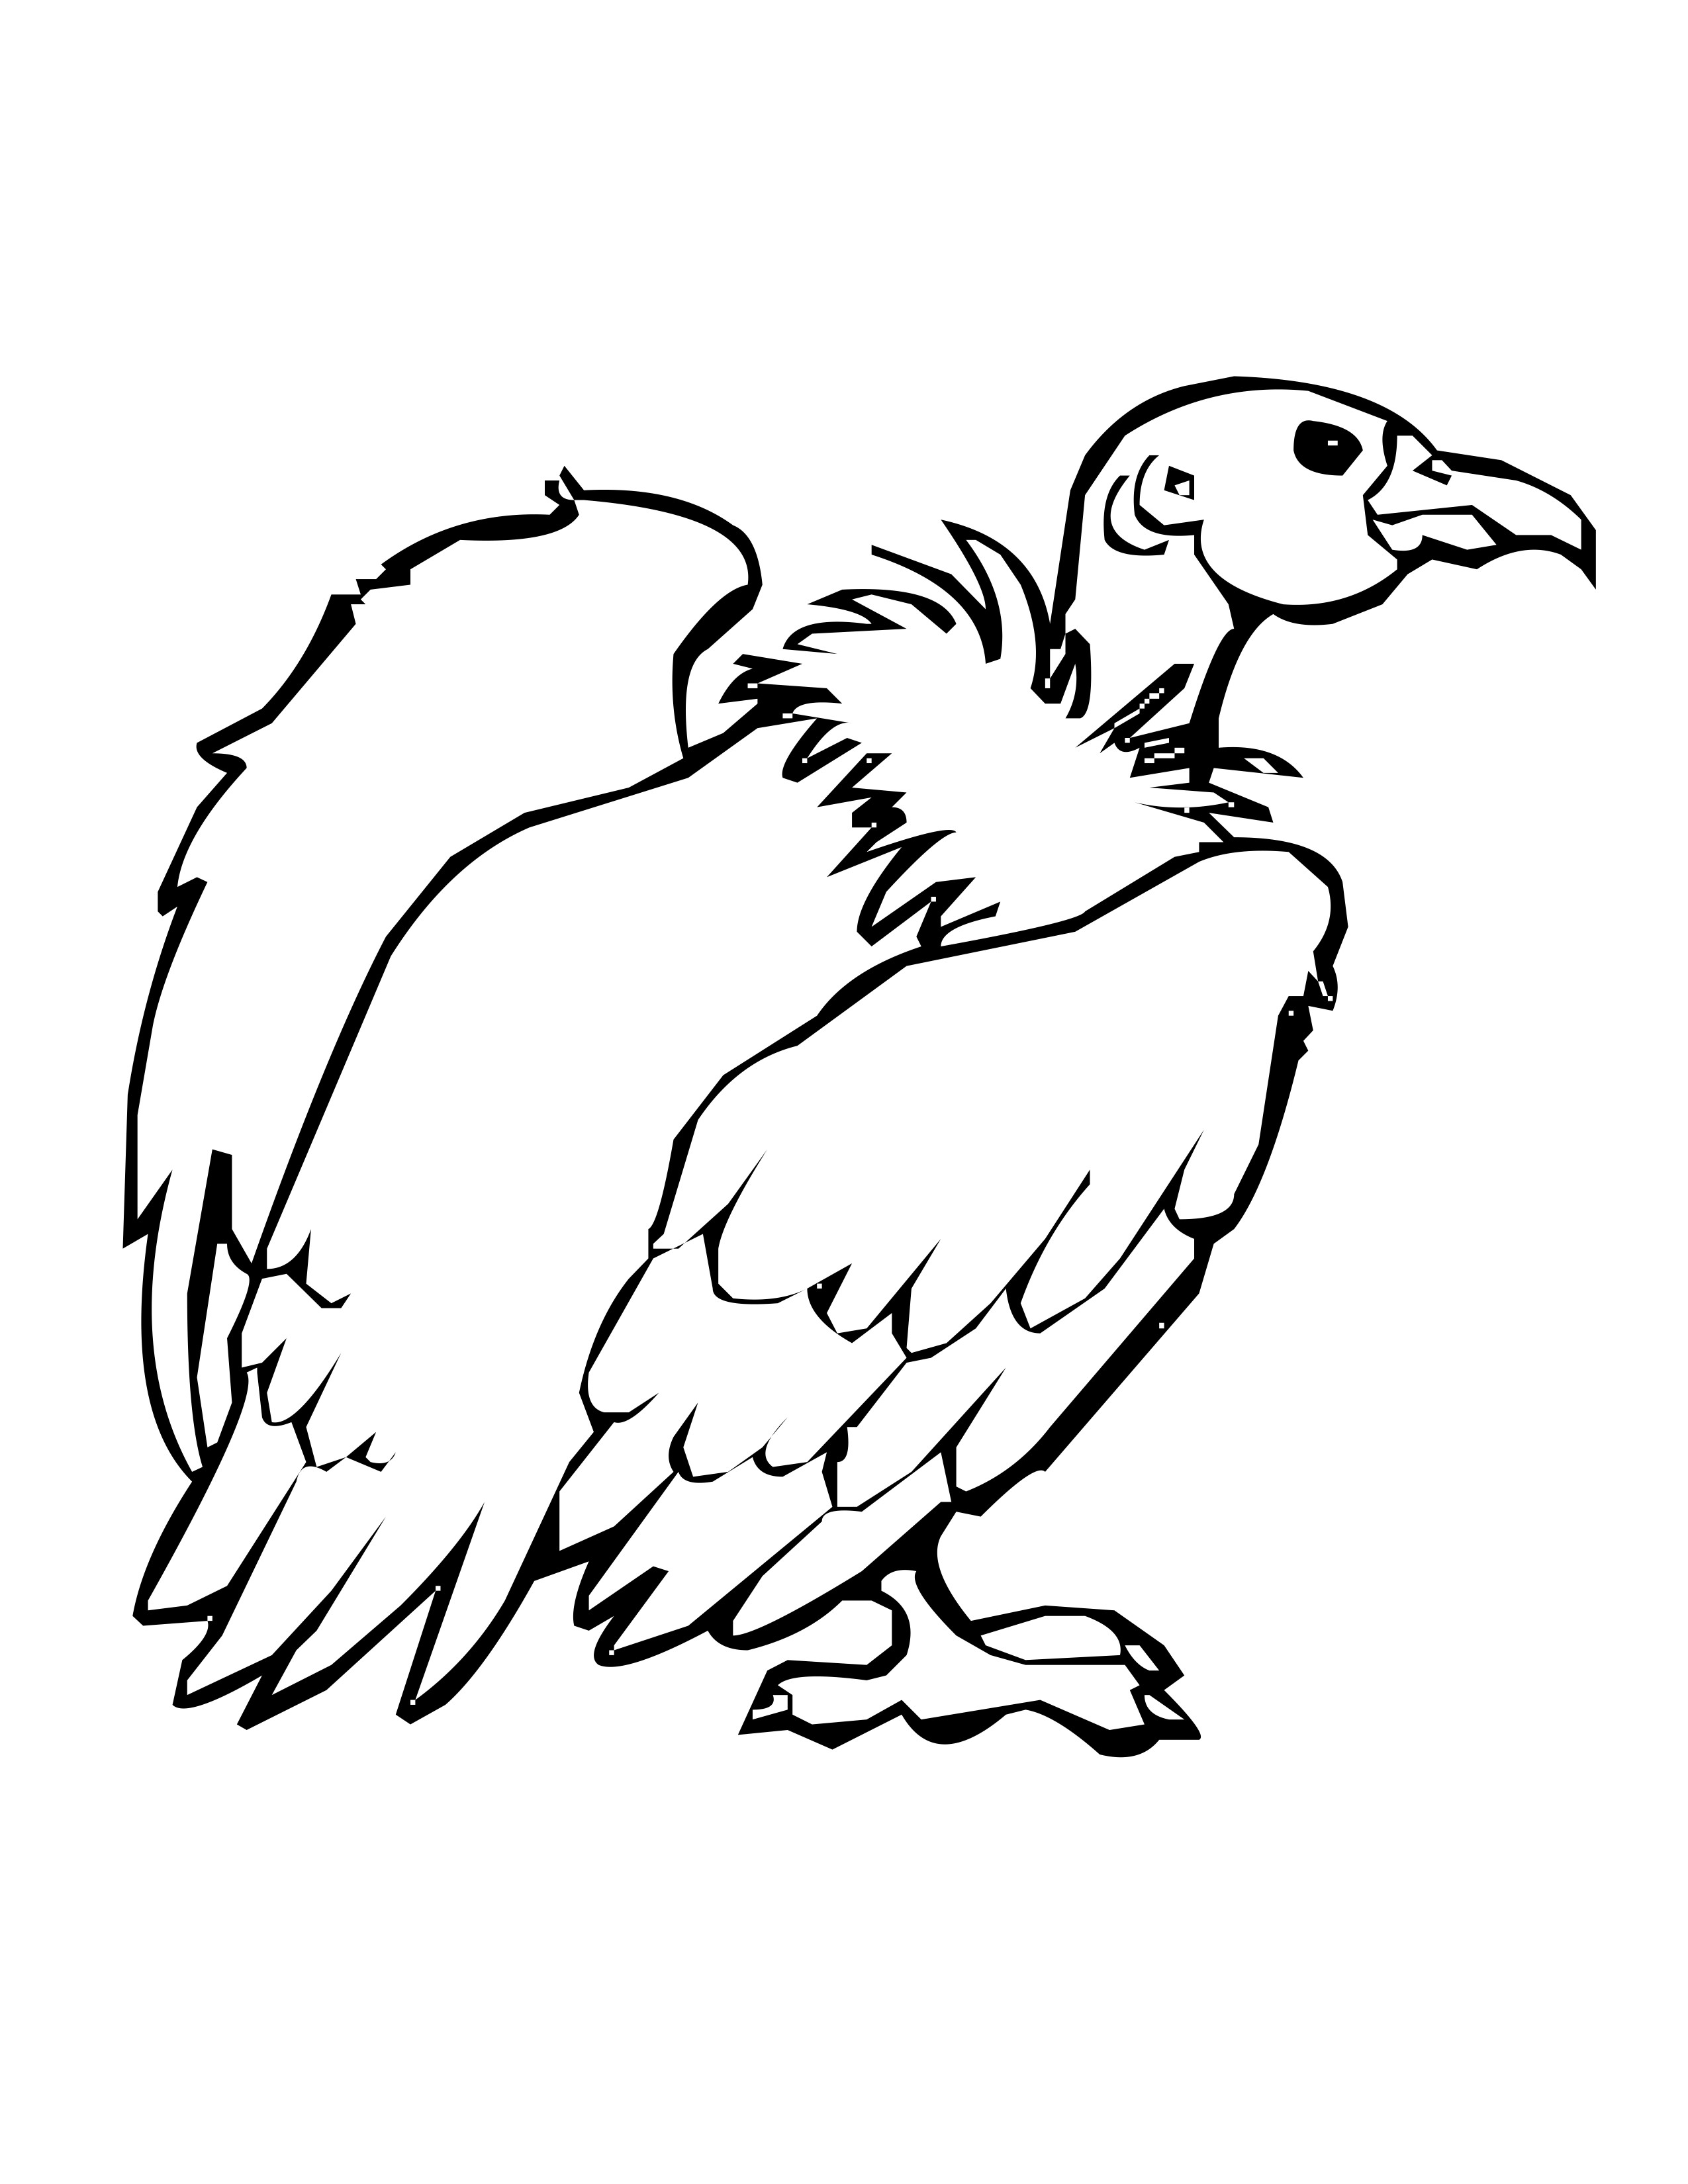 vulture coloring page white rumped vulture coloring page free printable vulture page coloring